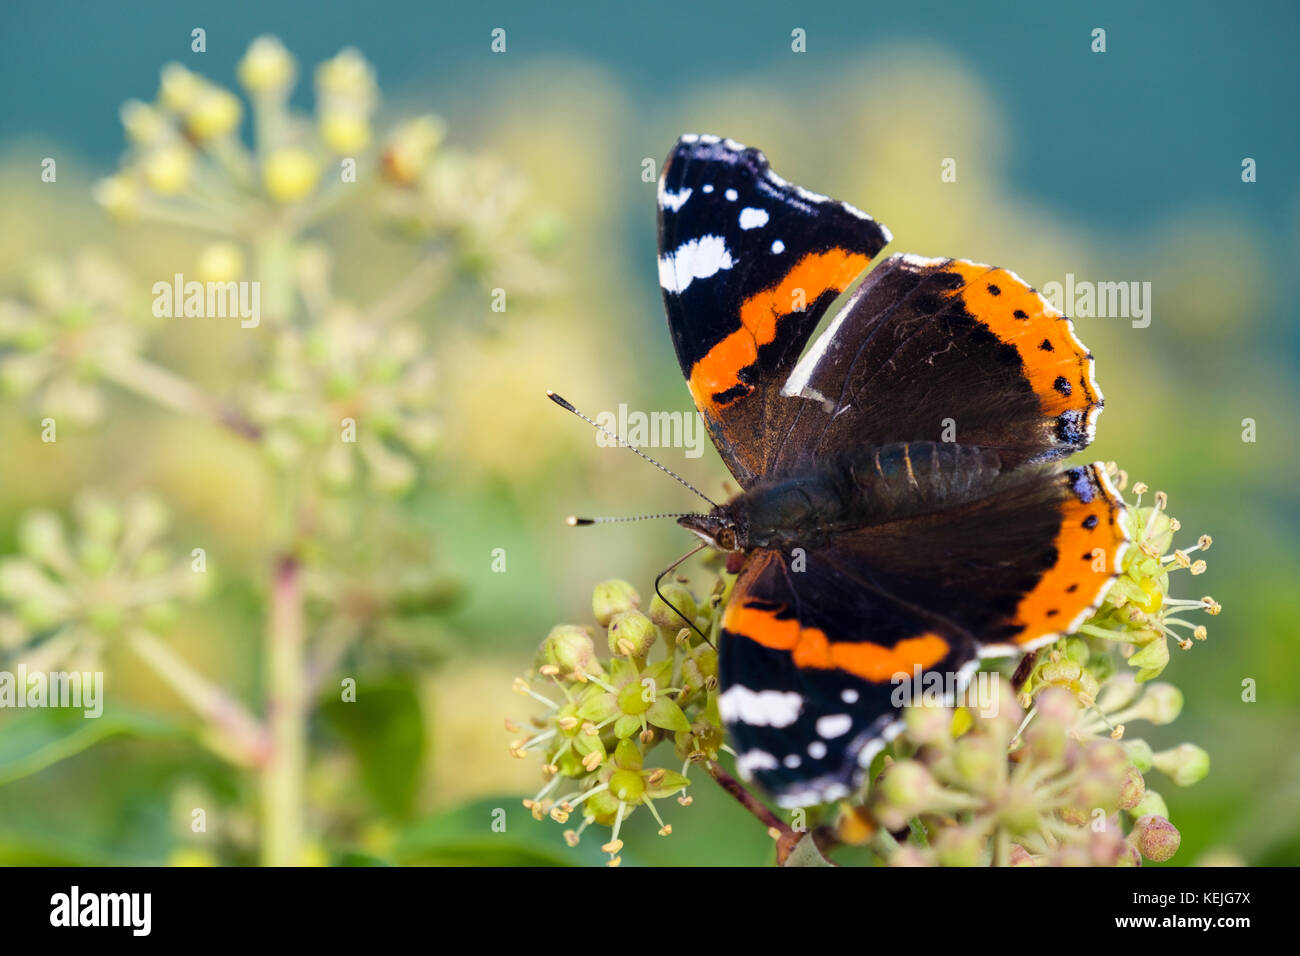 Red Admiral butterfly (Vanessa atalanta) preparing to hibernate feeding on Ivy flowers (Hedera helix) in late summer - Stock Image